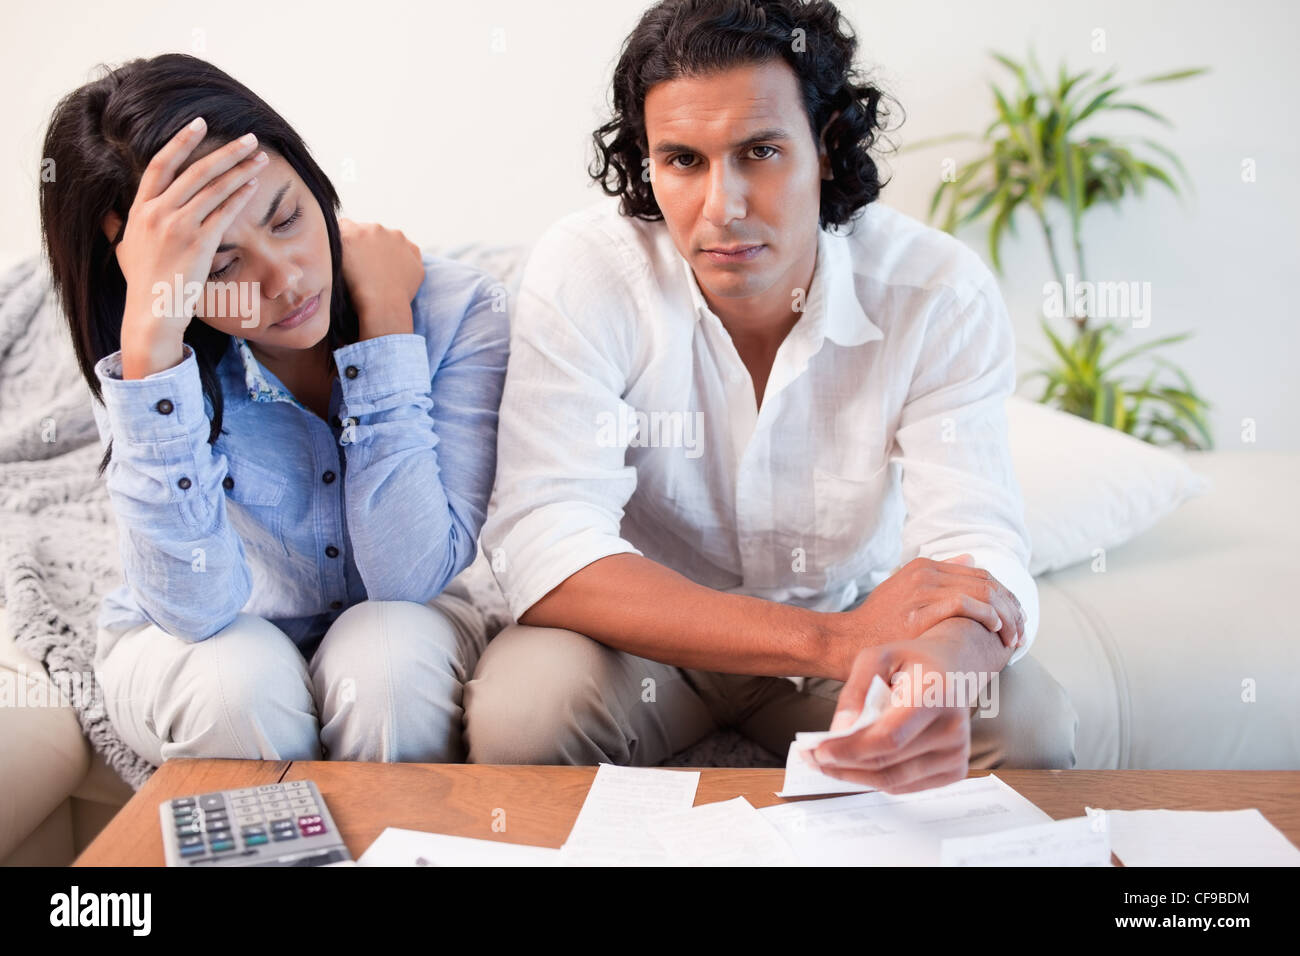 Couple experiencing financial problems - Stock Image